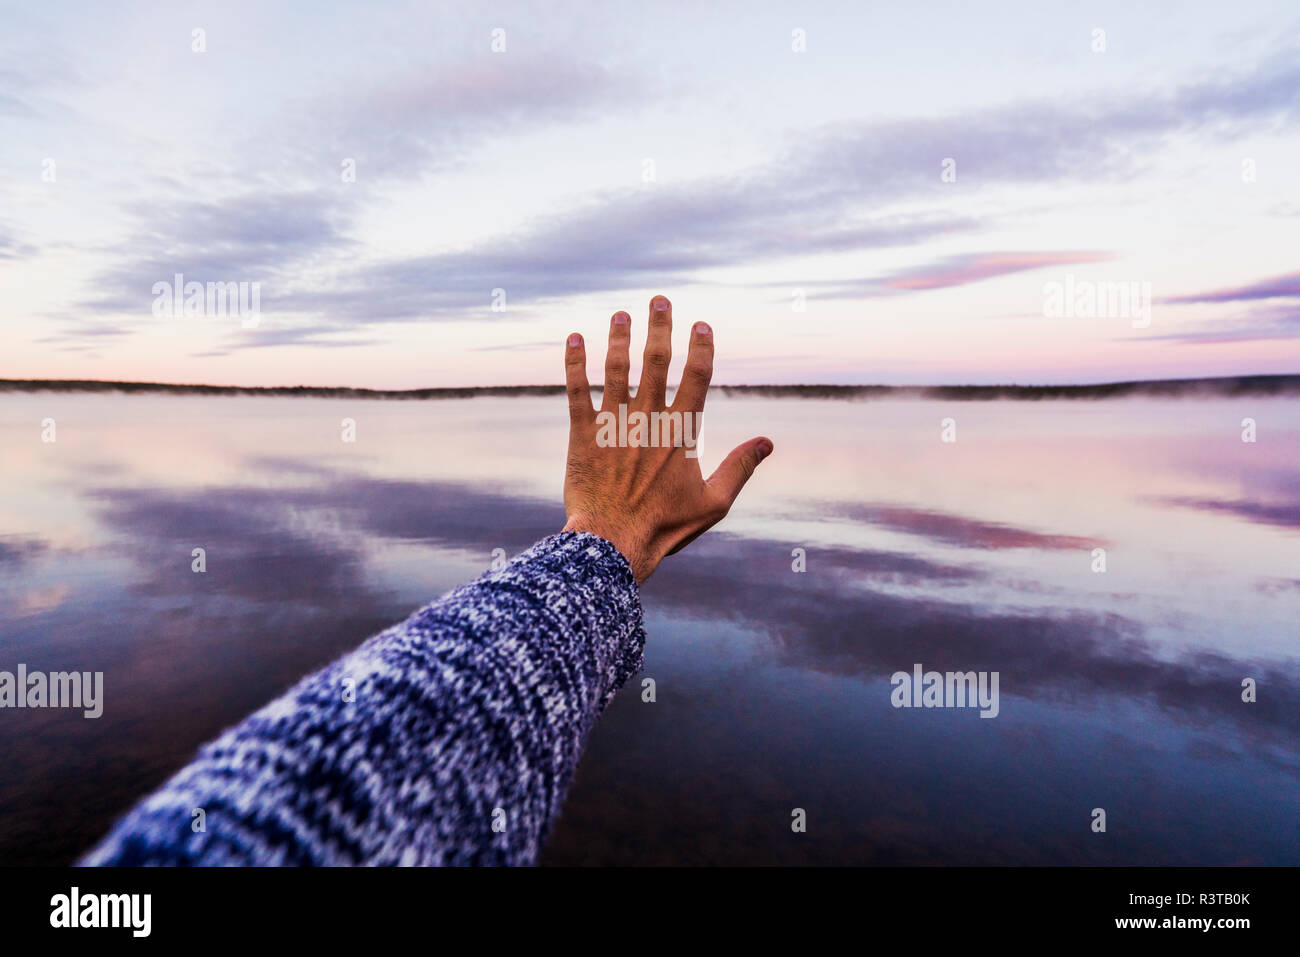 Hand of young man reaching out to the sky - Stock Image